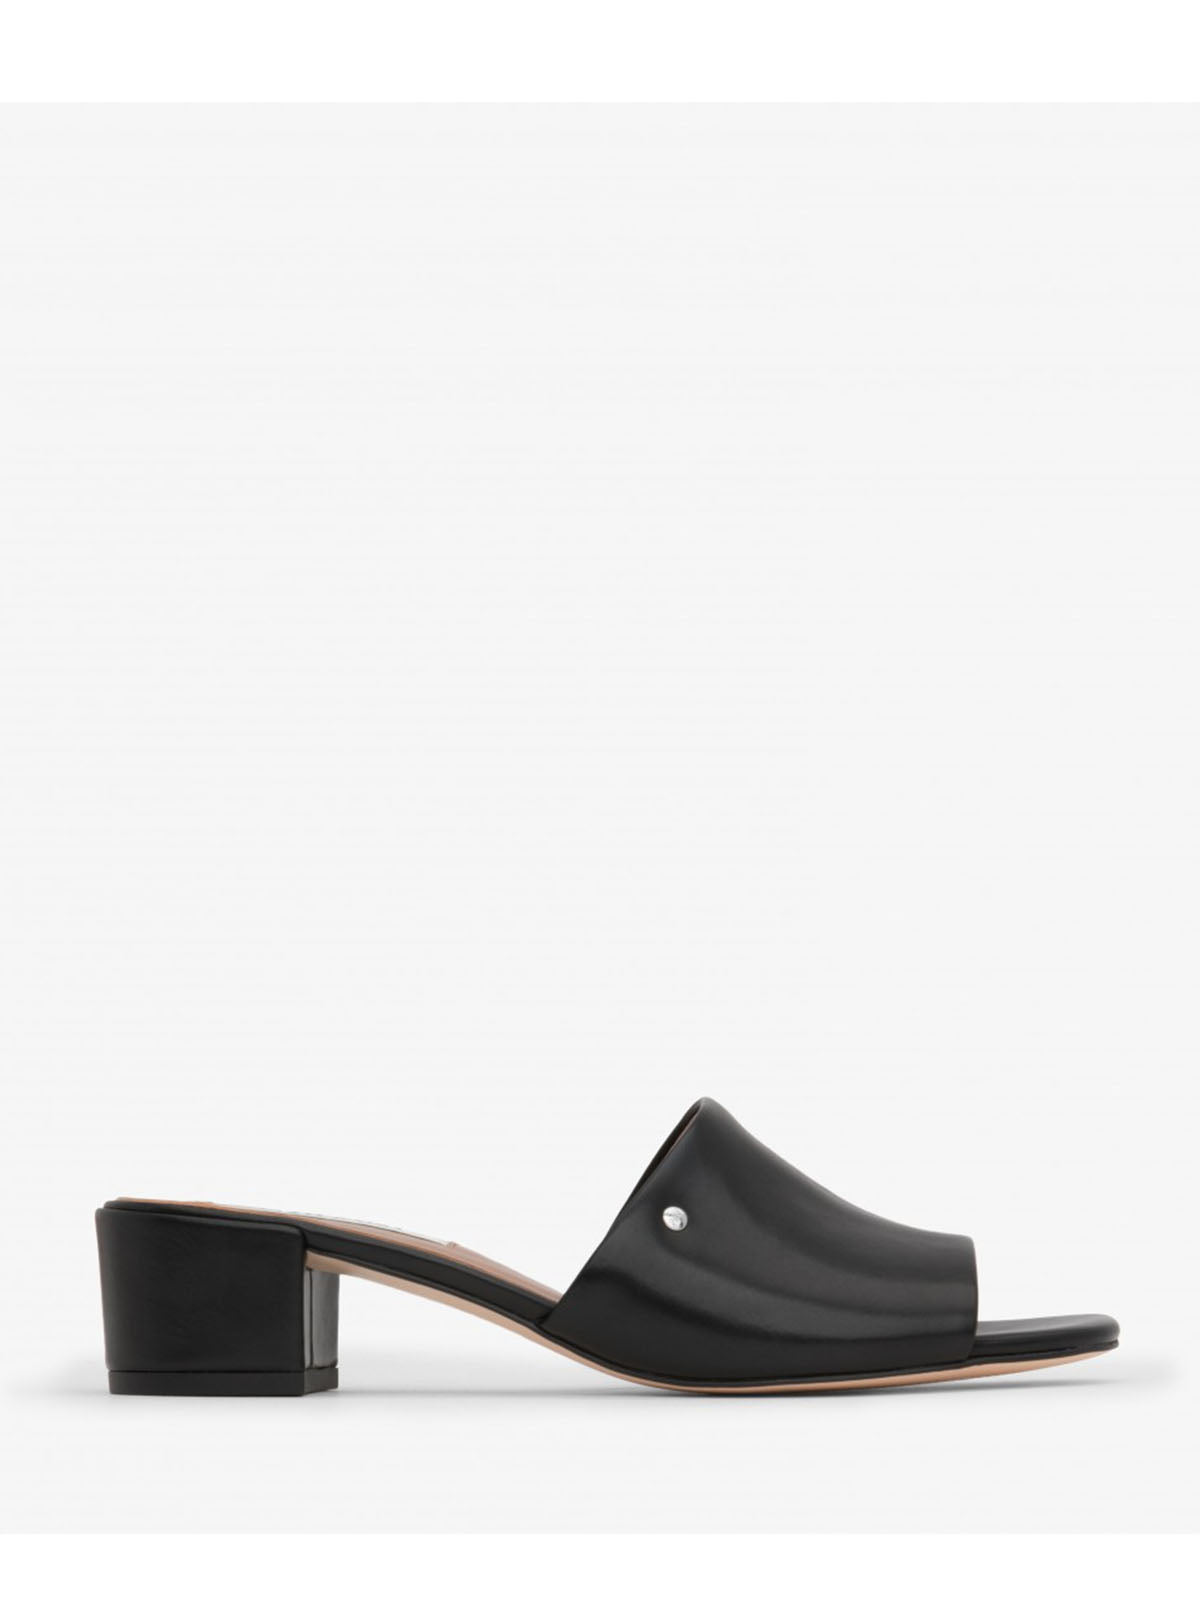 Tibi Slip Sandle - Black